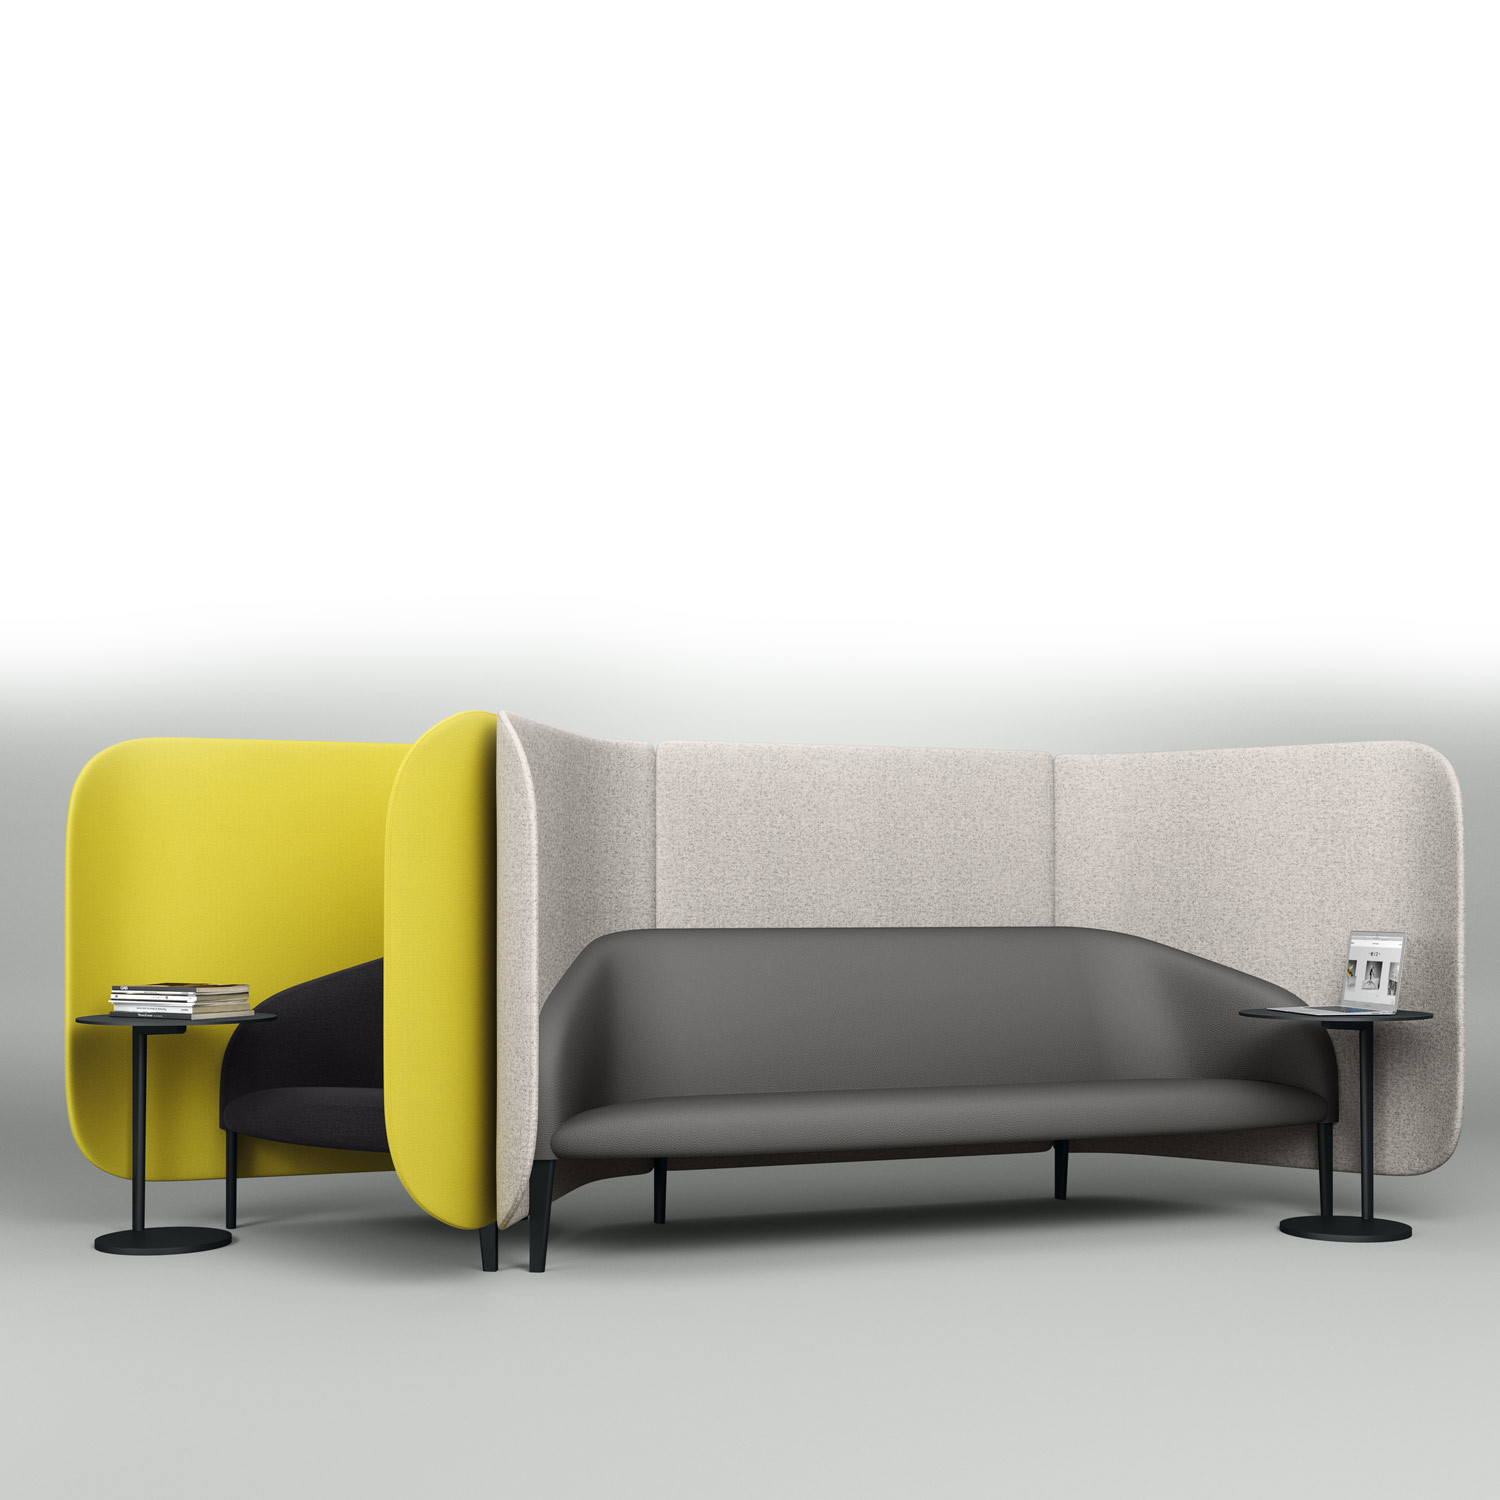 Cellular Lounge Seating Cells